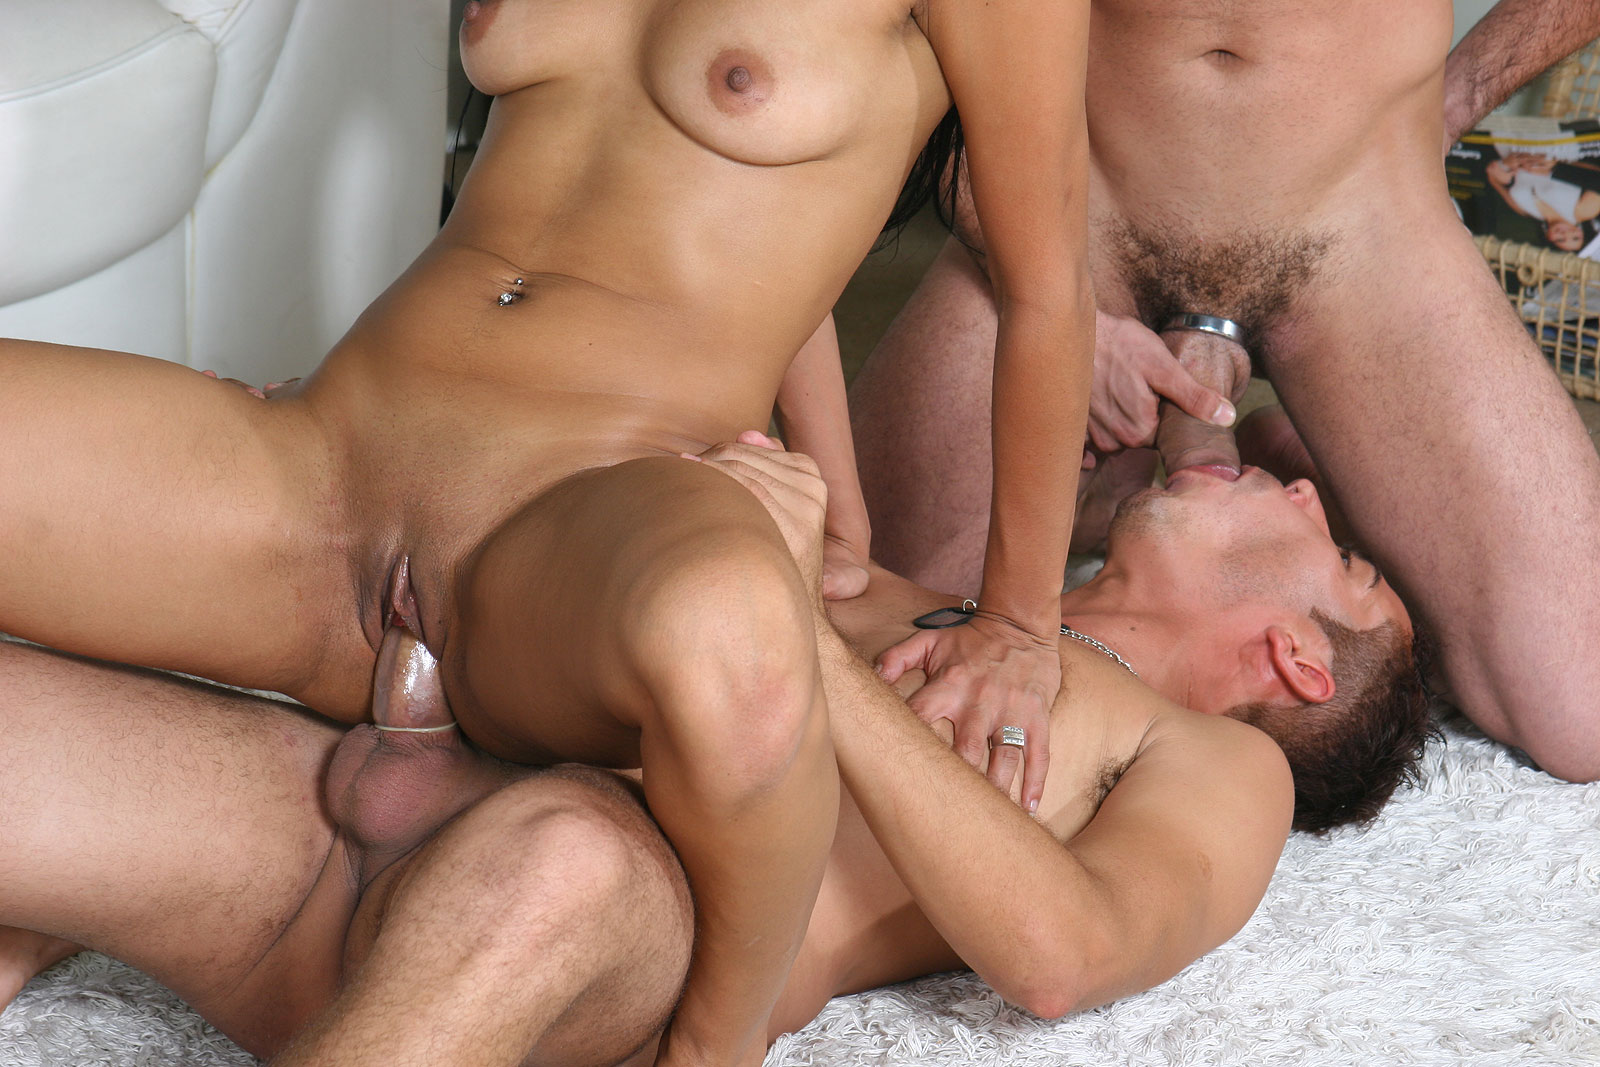 bisexual men vporn